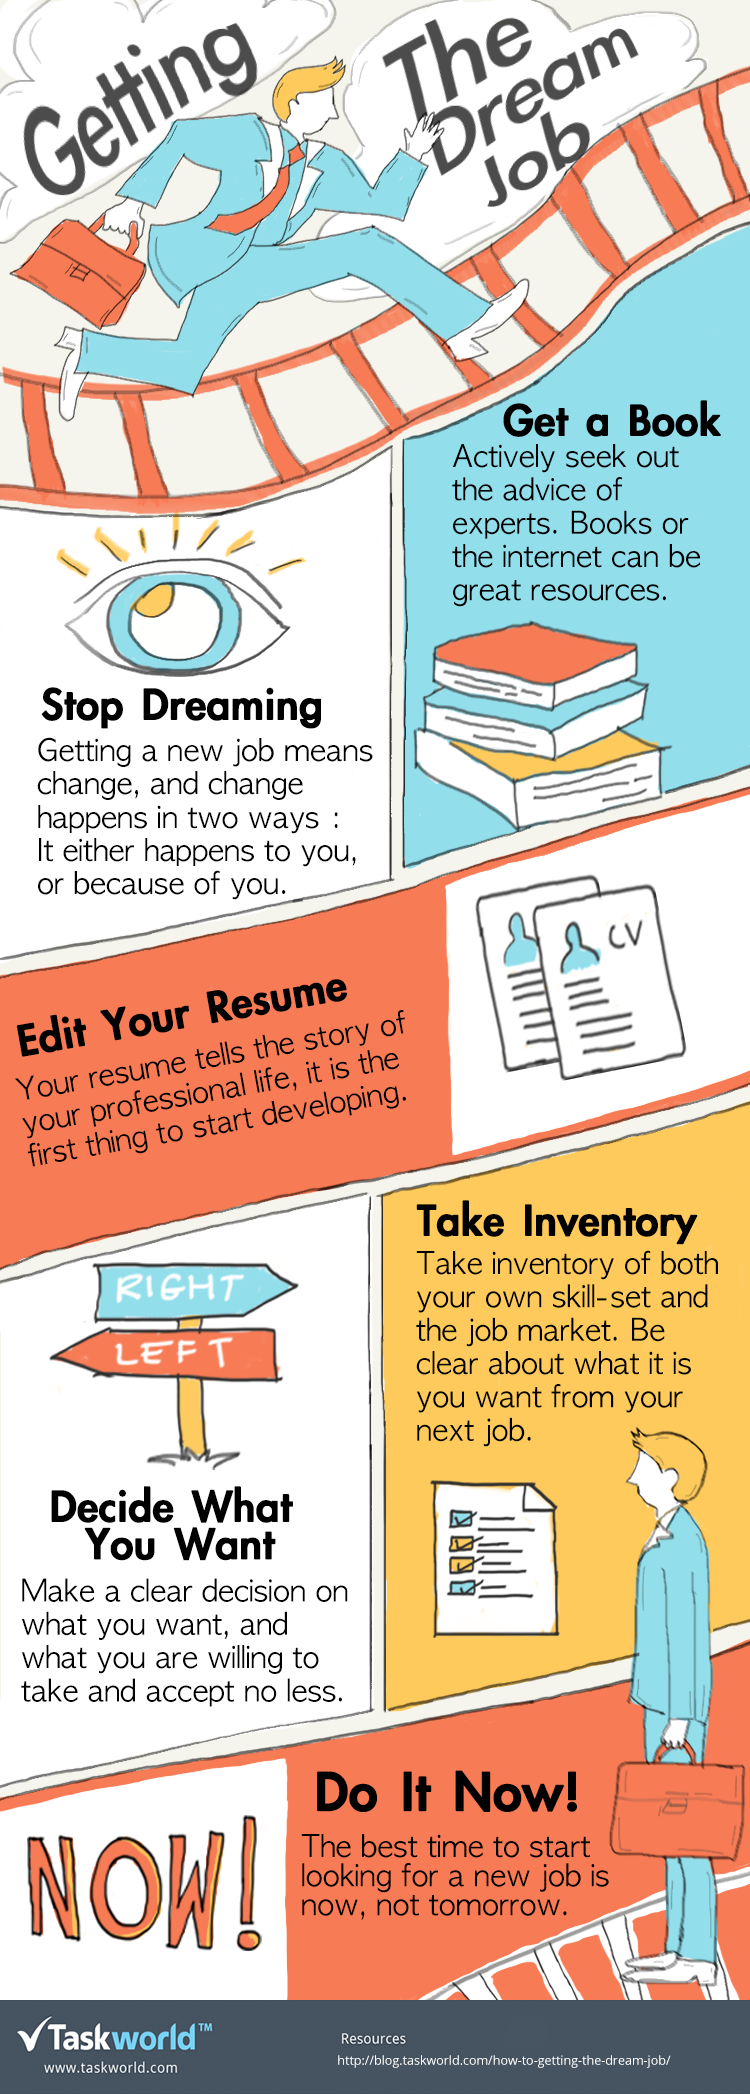 17 best images about job search job search tips 17 best images about job search job search tips searching and hunting